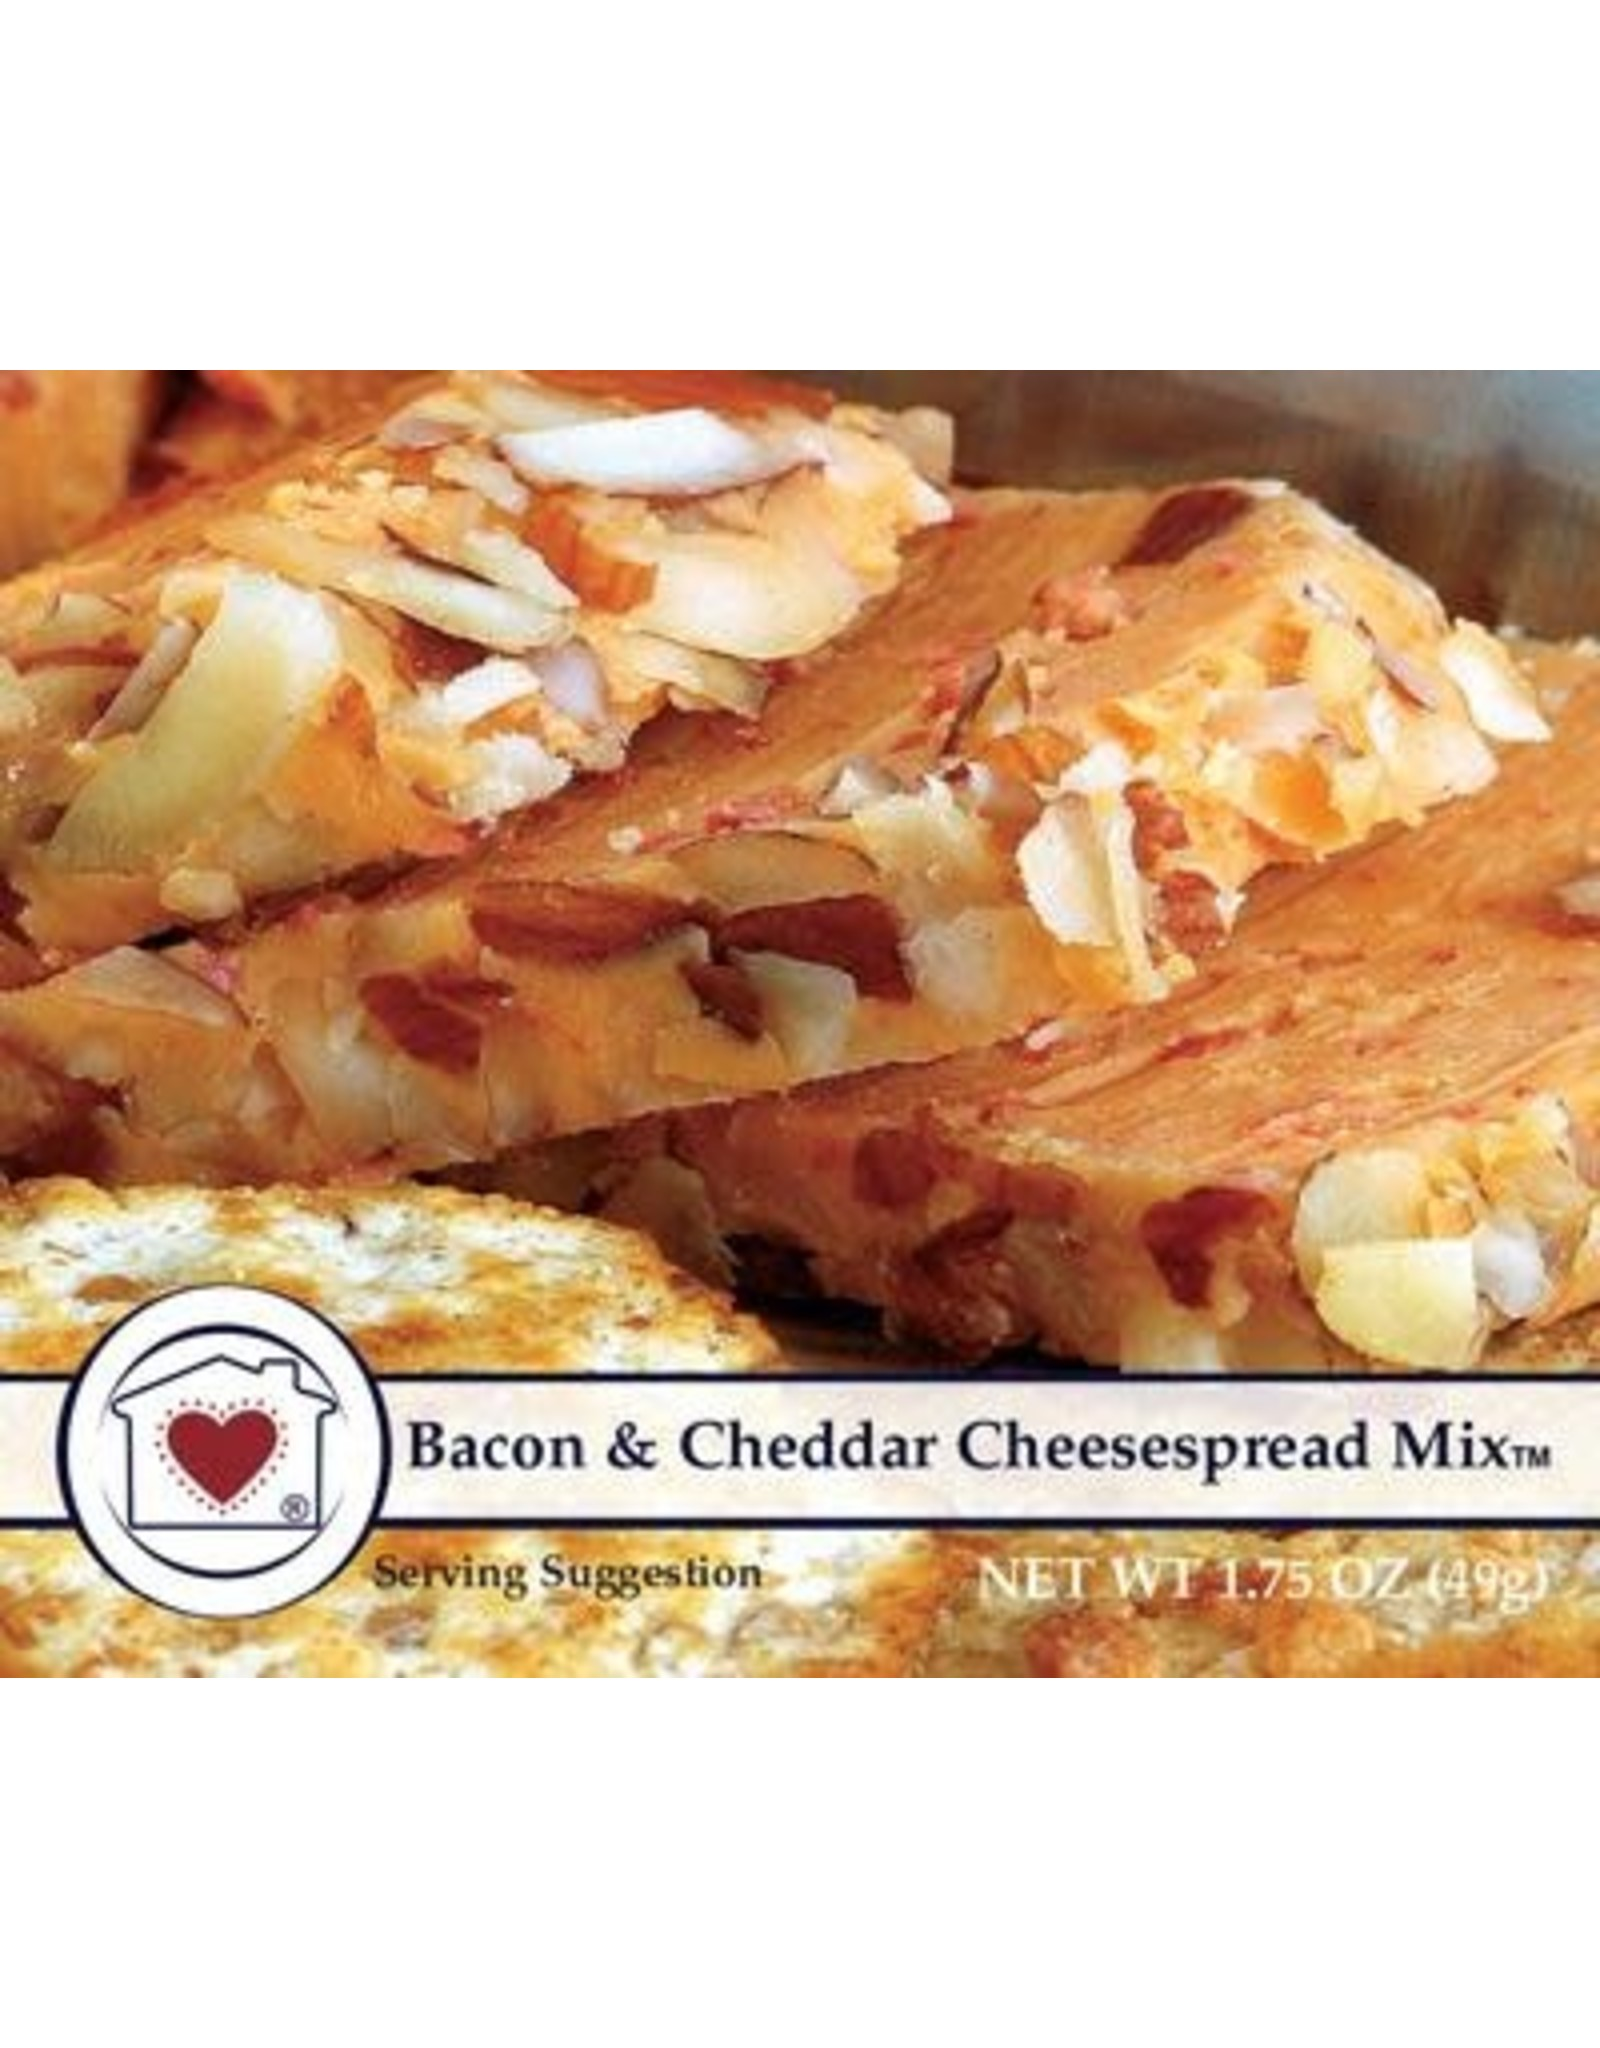 Country Home Creations Bacon & Cheddar Cheesespread Mix, 1.75 oz